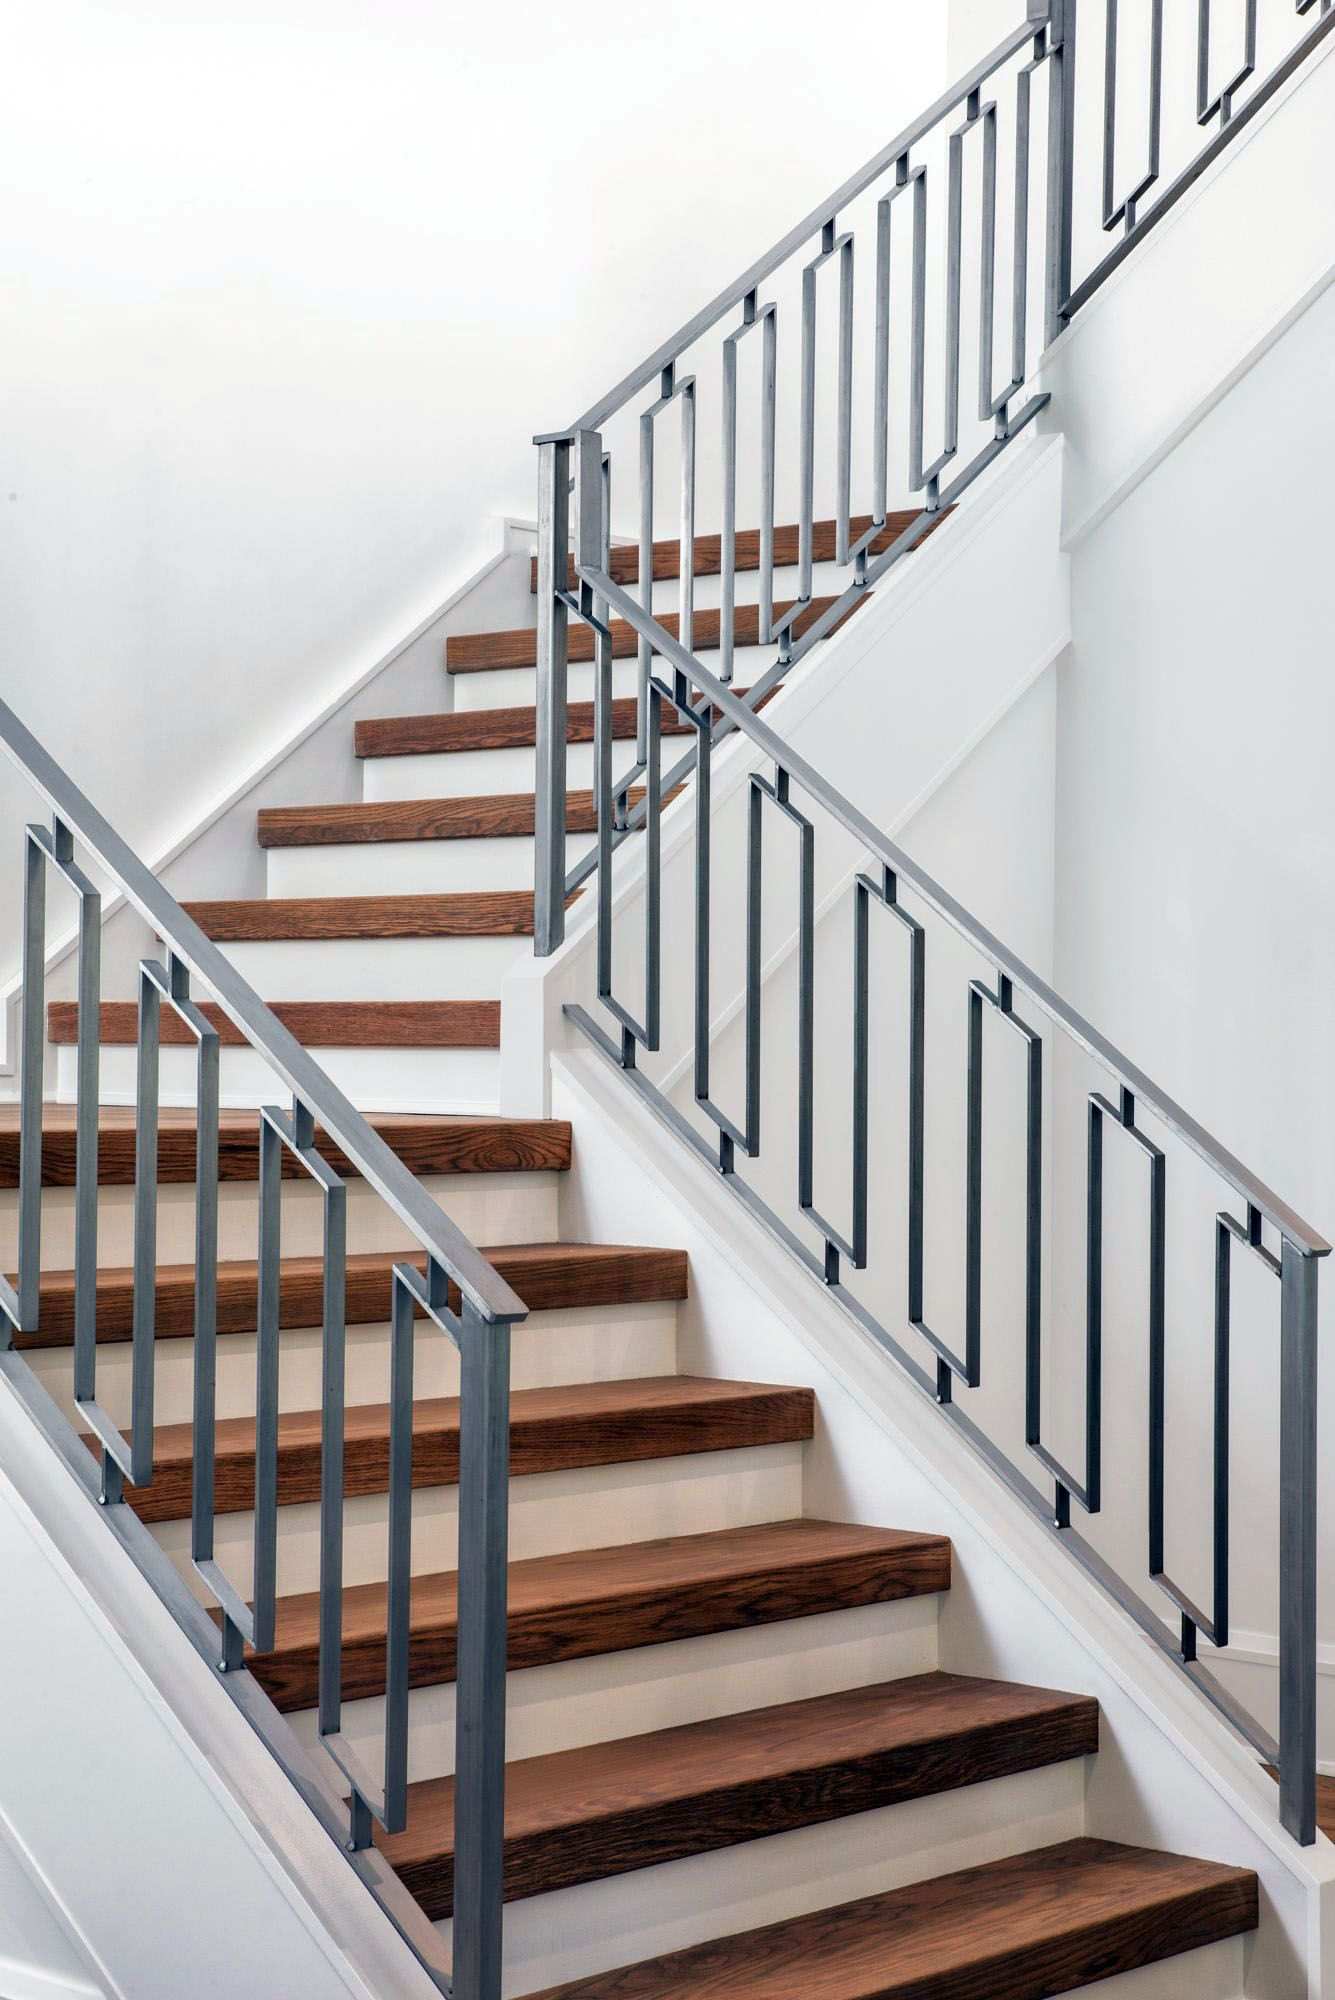 The Next Level 14 Stair Railings To Elevate Your Home Design Staircase Railing Design Staircase Railings Stair Railing Design